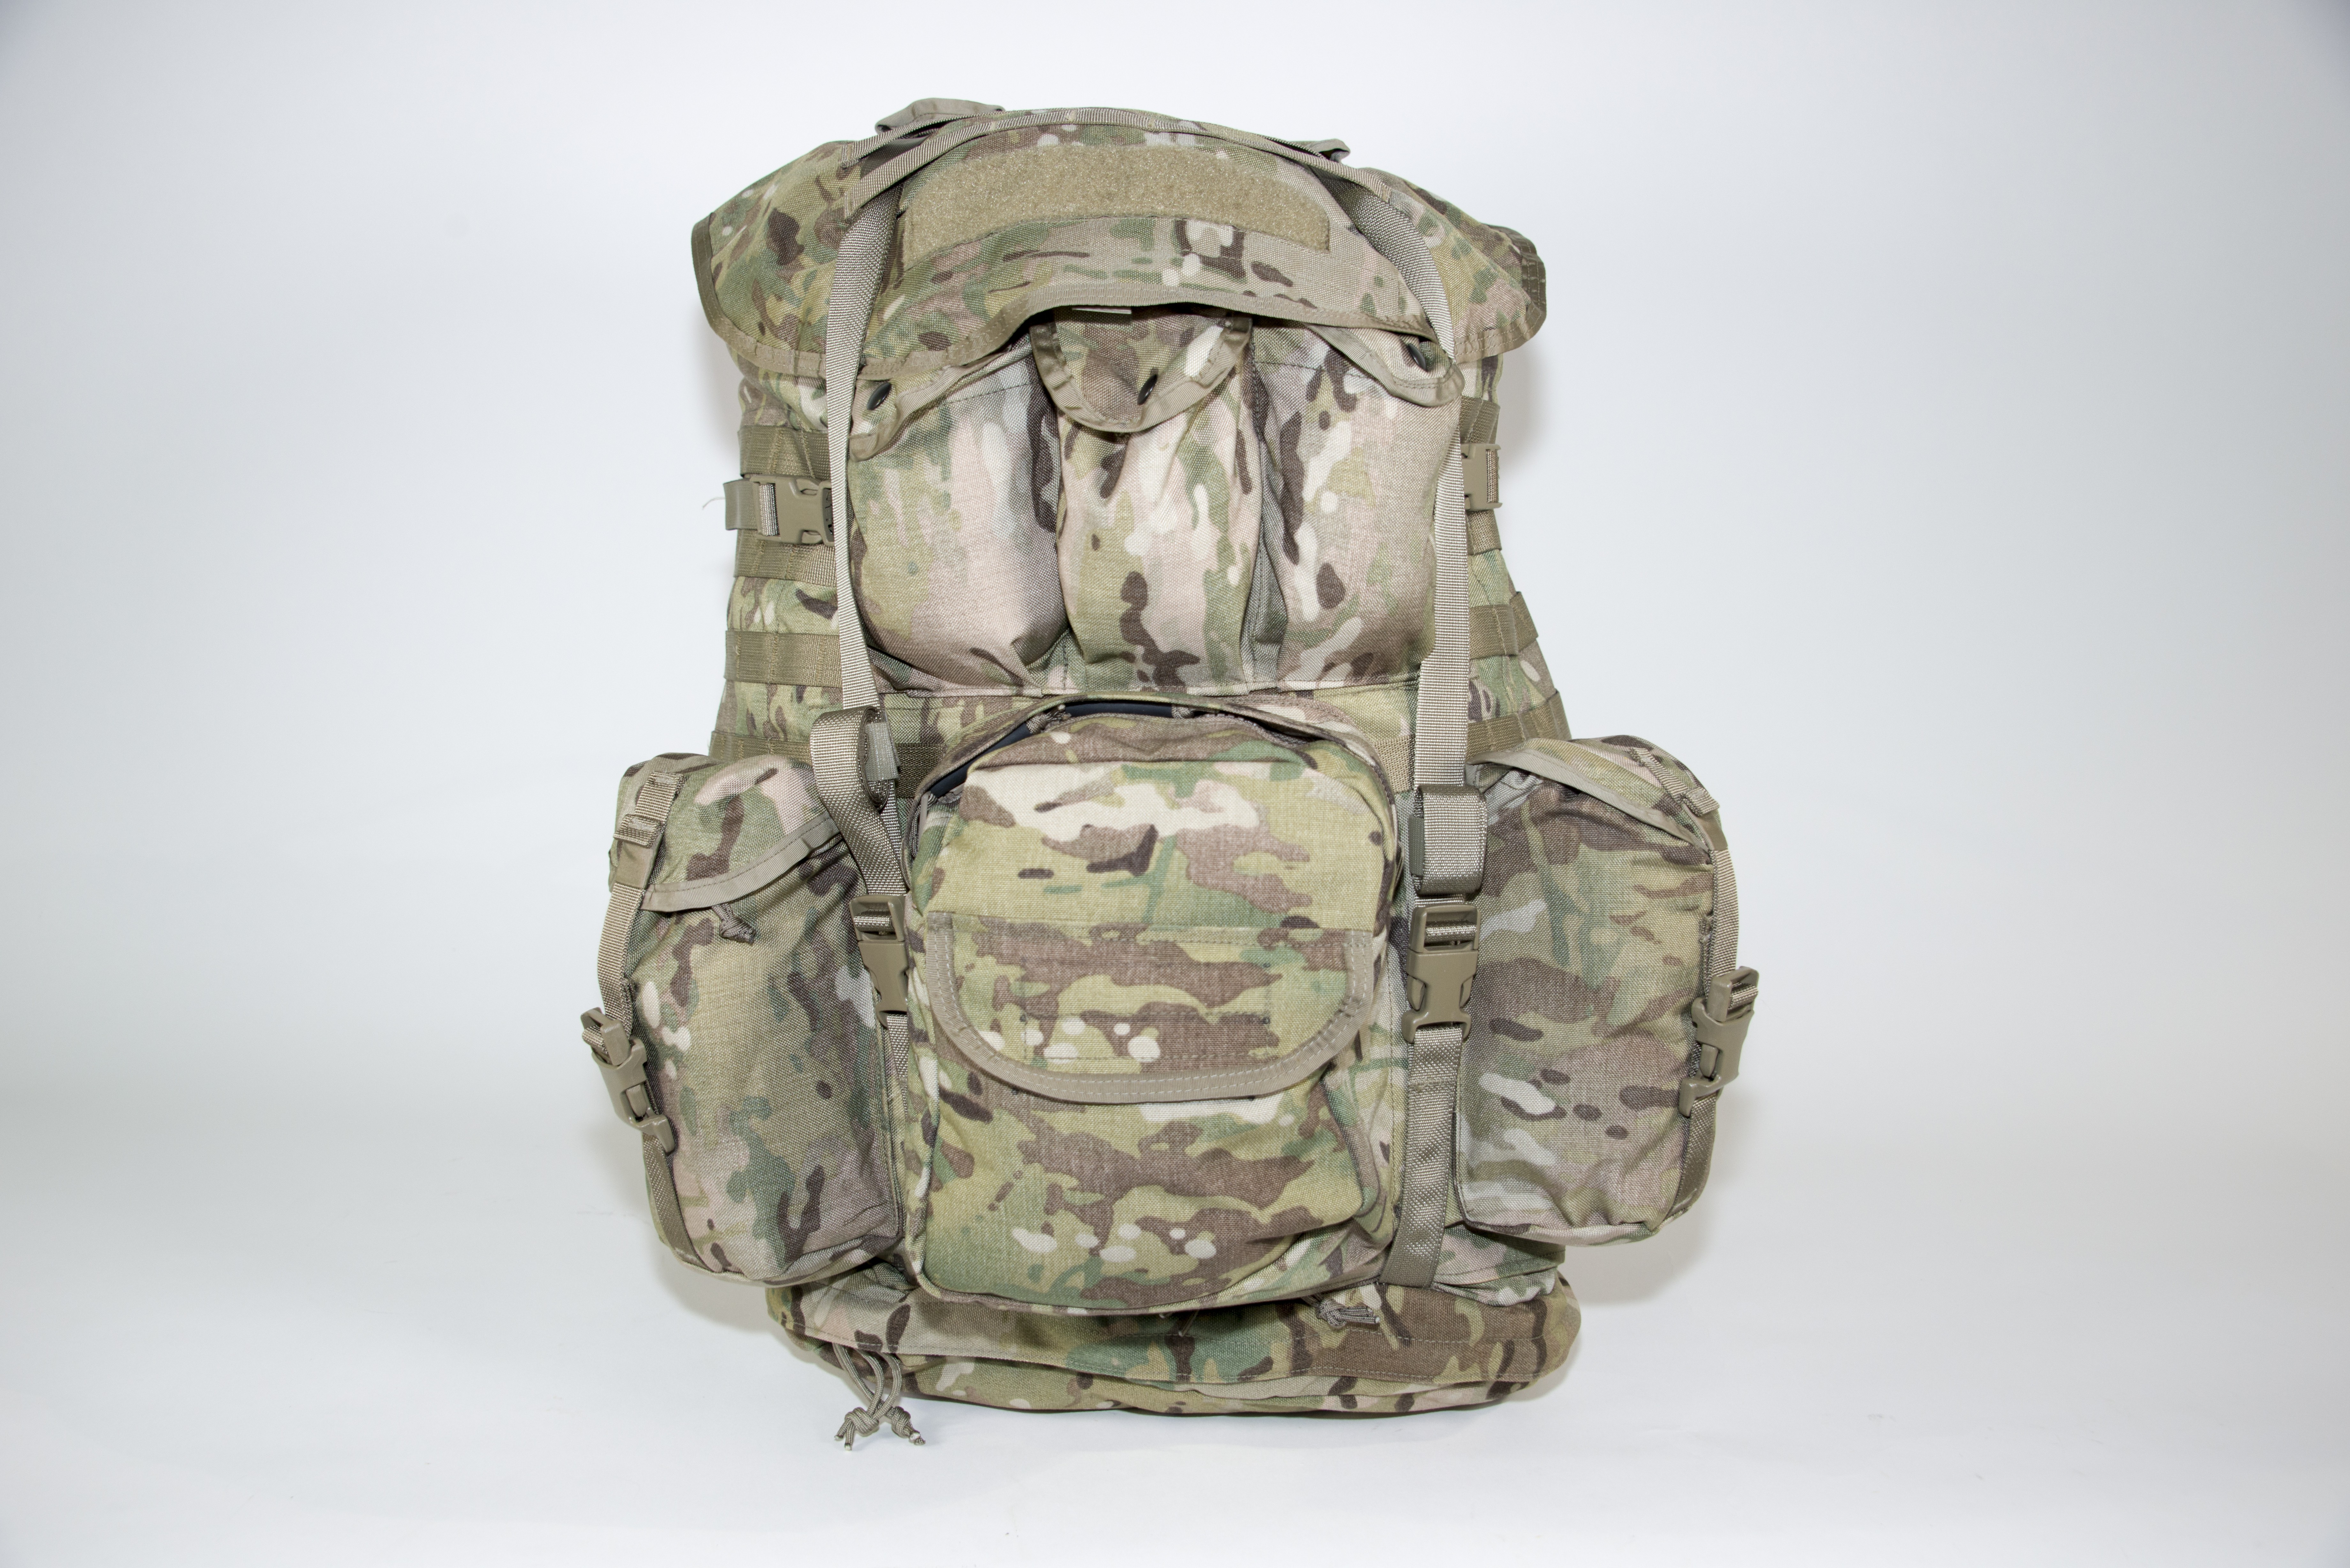 Airborne testers close in on final rucksack design | Article | The ...